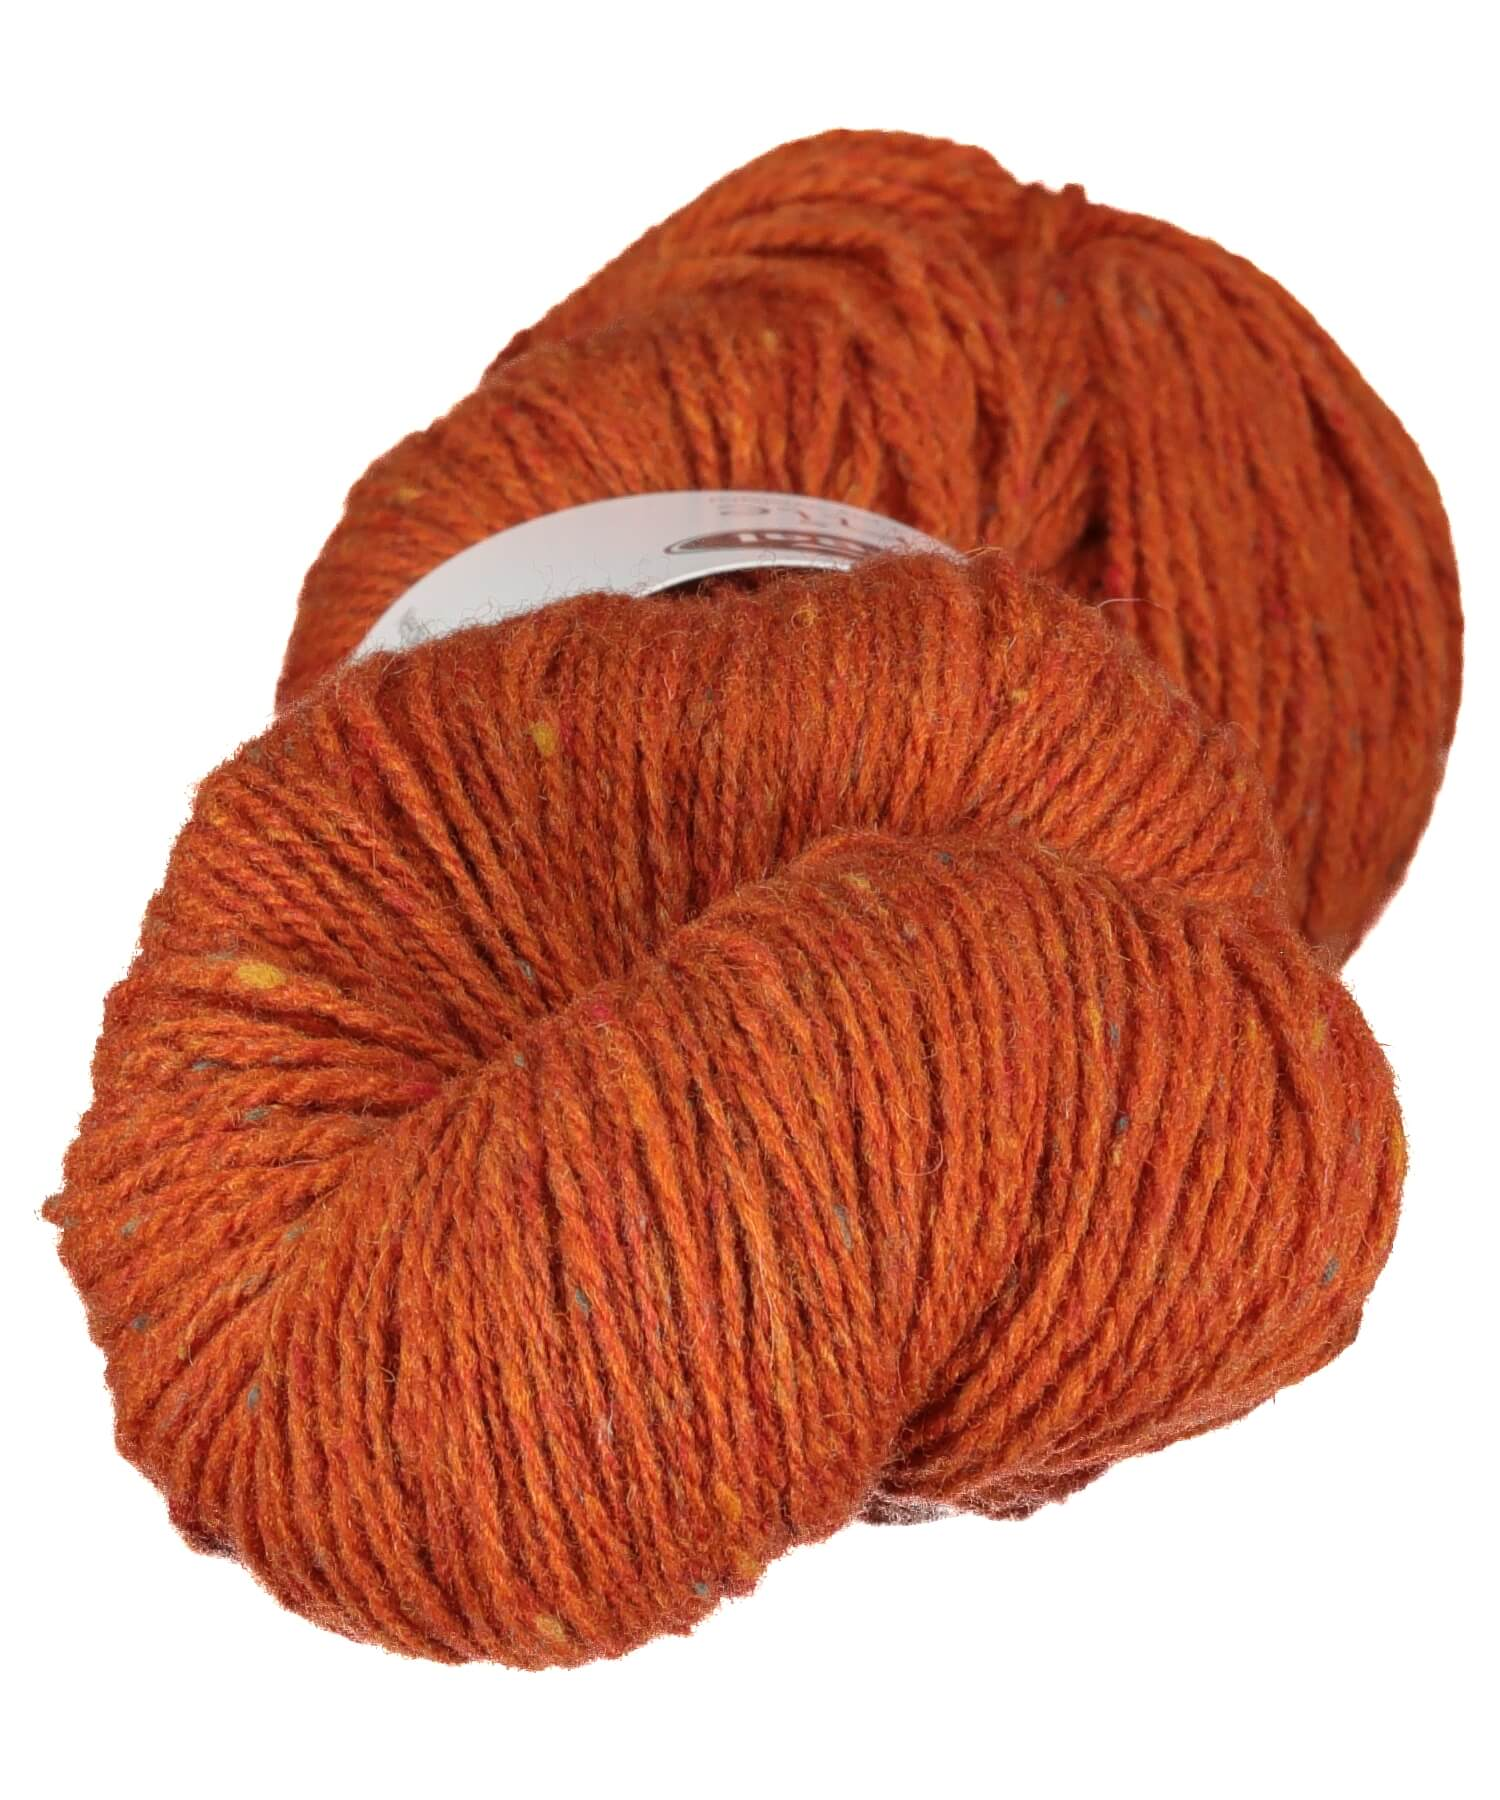 Handwoven Darnie Yarn - Rust - [Studio Donegal] - Knitting - Irish Gifts